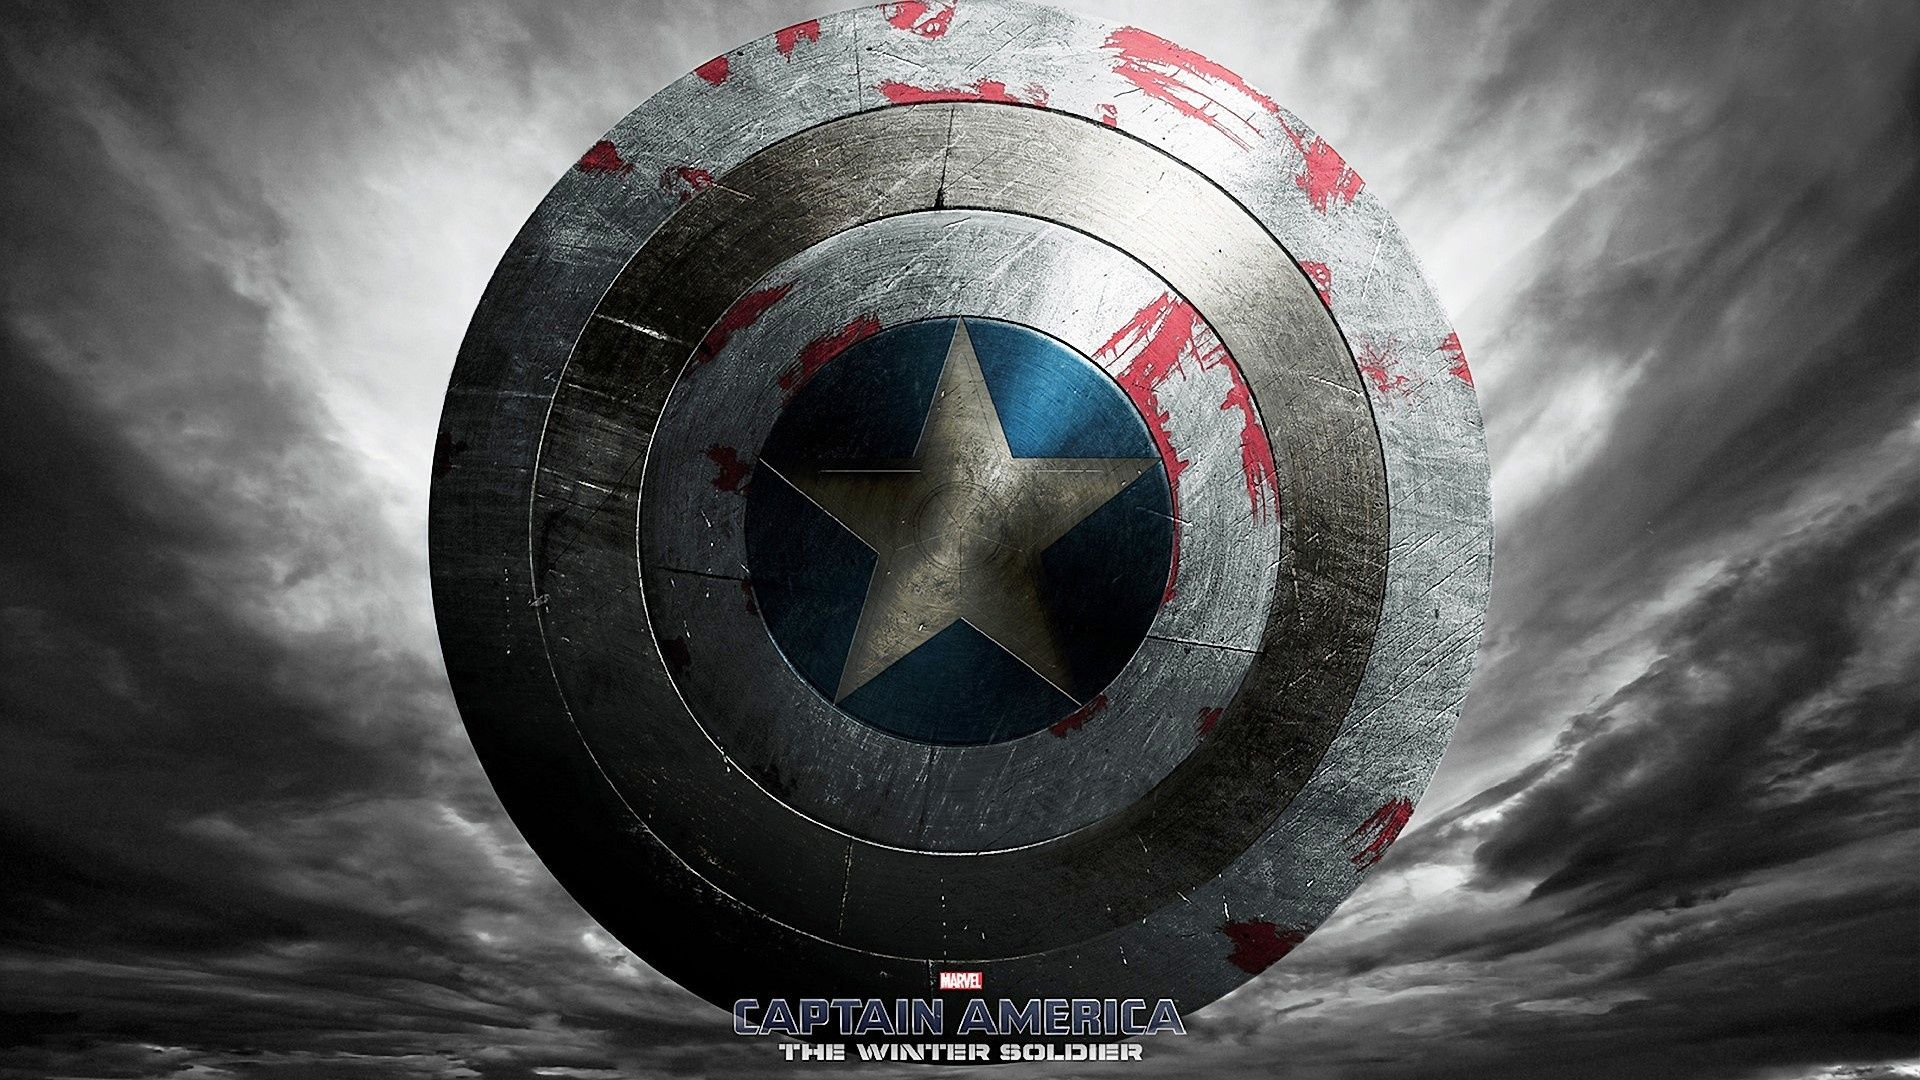 Hd wallpaper of captain america - Captain America Avengers Wallpapers Hd Wallpapers